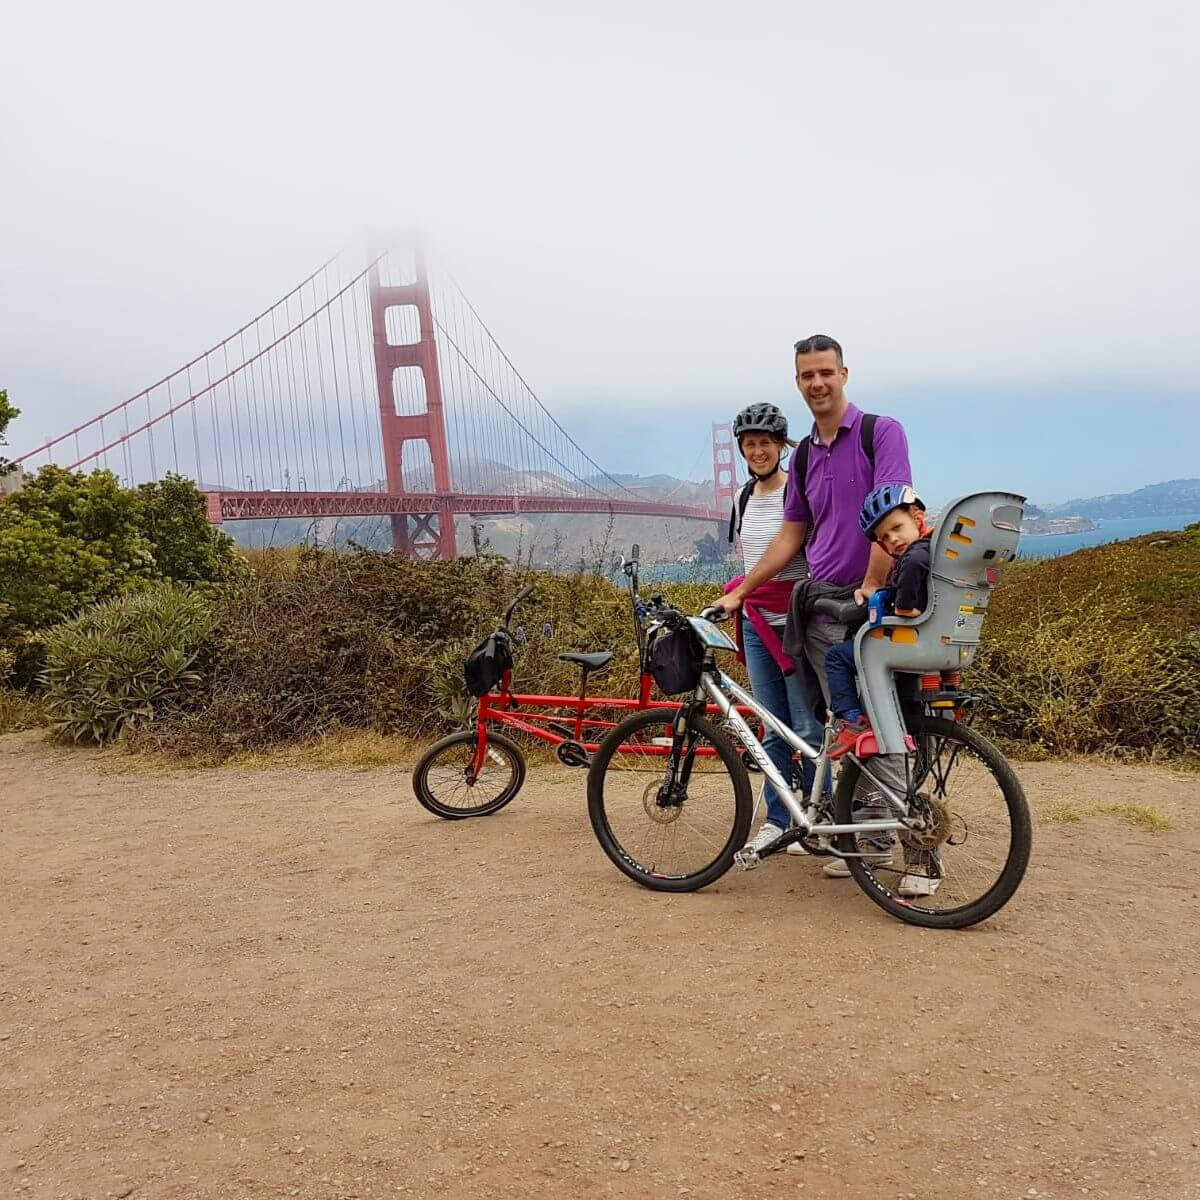 San Francisco met kids: kindvriendelijke tips van een local, Walking Tour Golden Gate Bridge